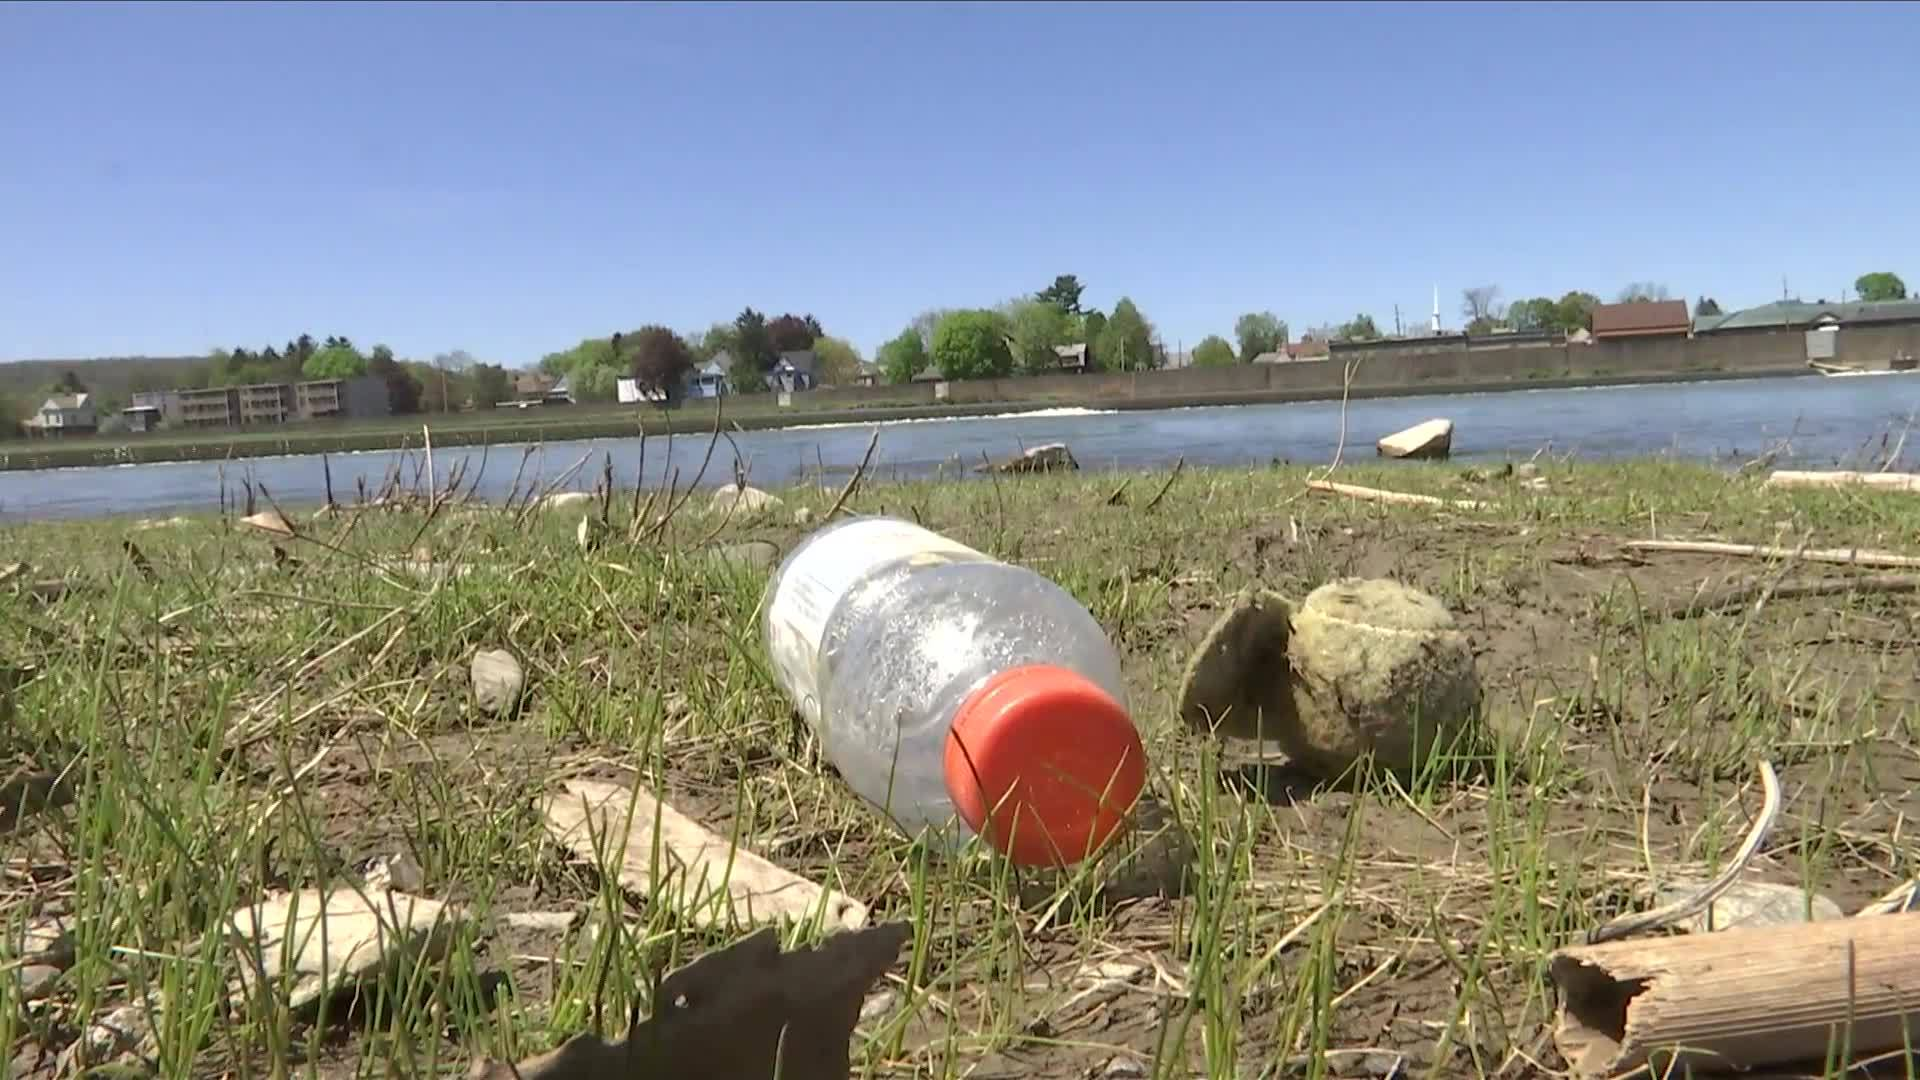 Chemung_River_Cleanup_8_20190508221823